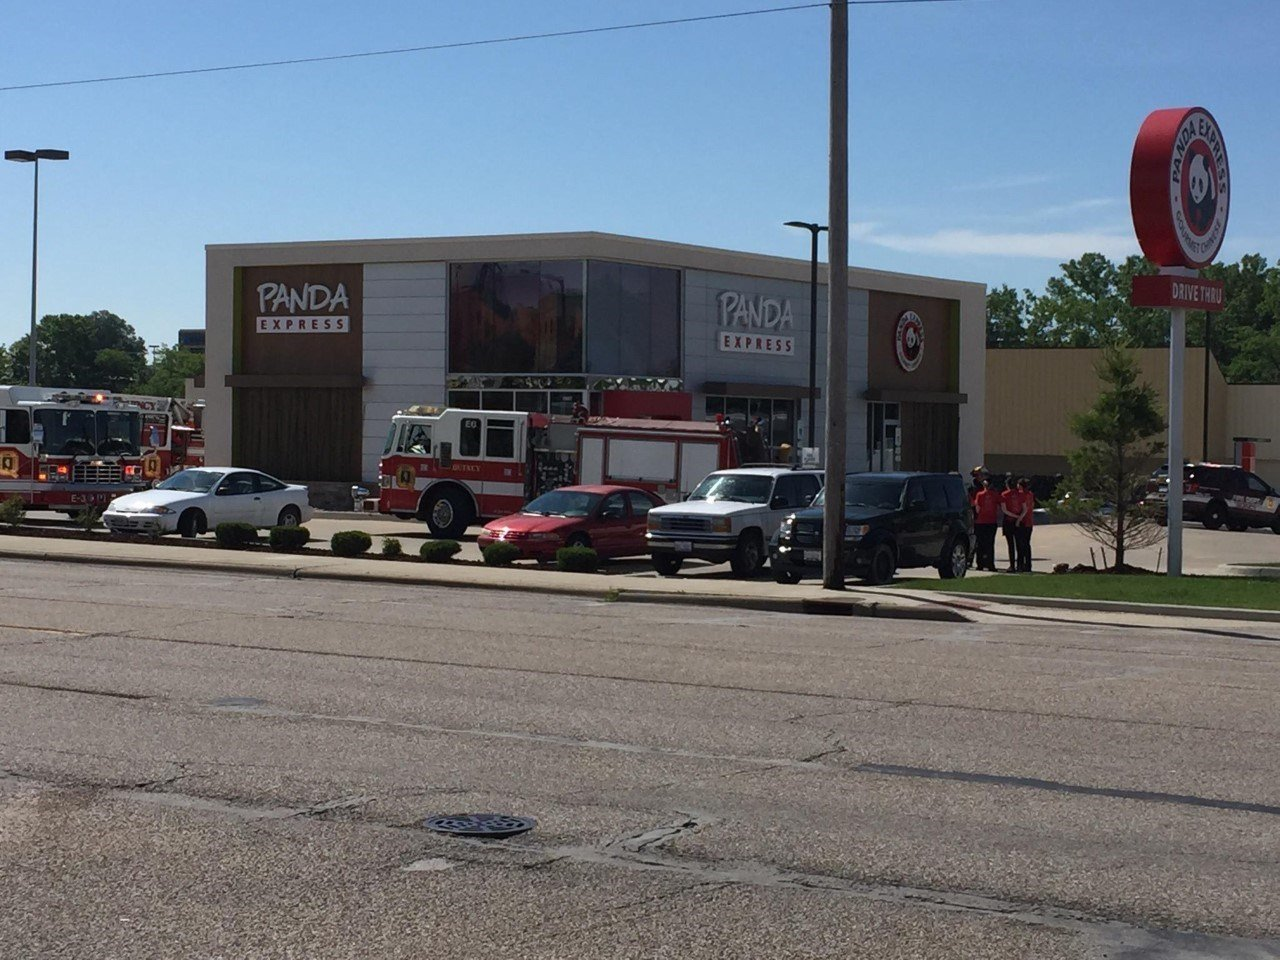 Panda Express Closed After Fire In Restaurant Wkow 27 Madison Wi Breaking News Weather And